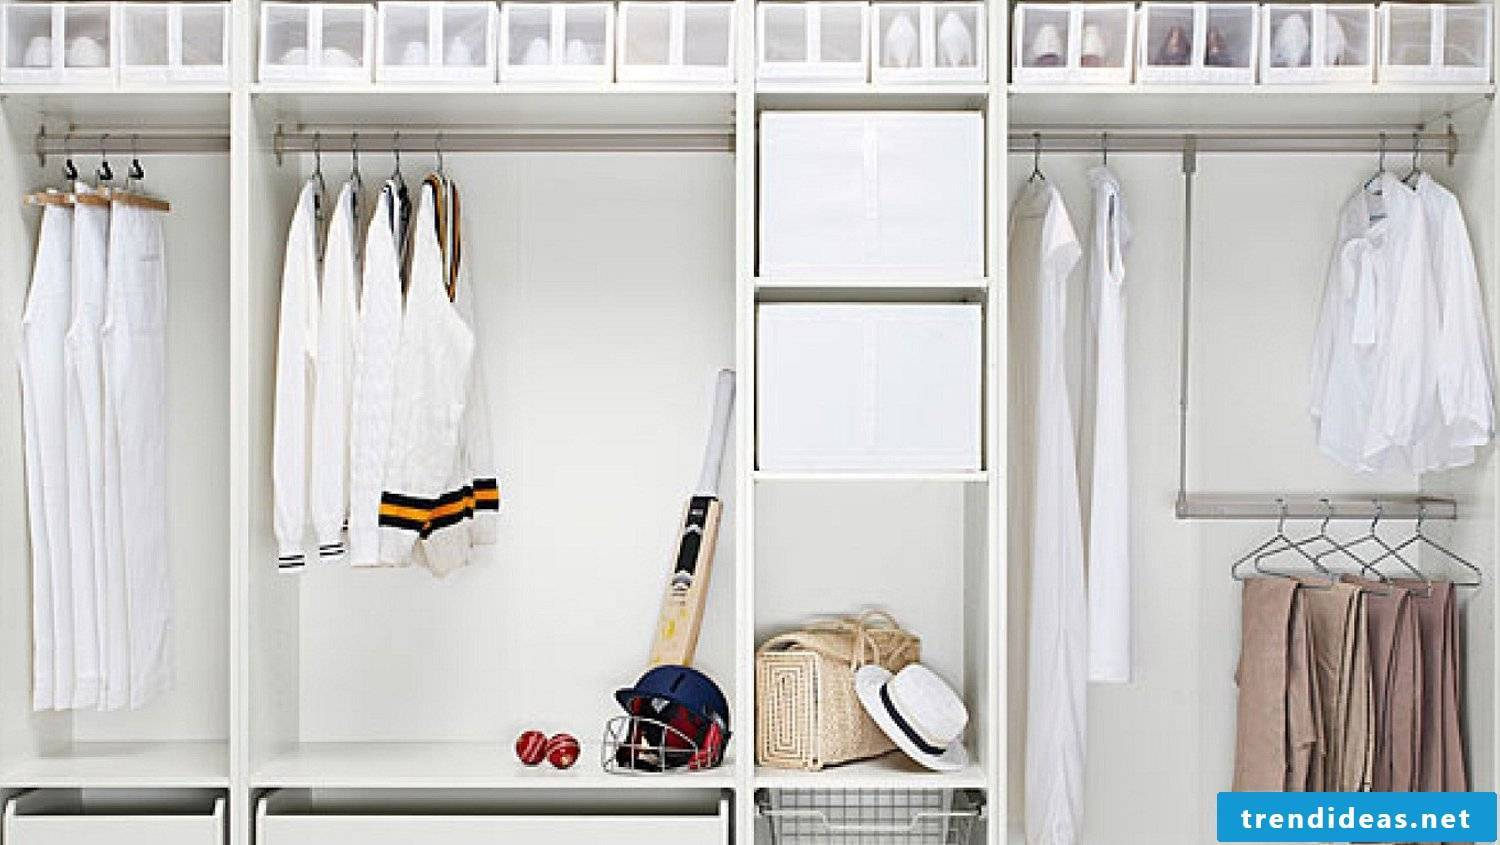 Build the wardrobe yourself in white